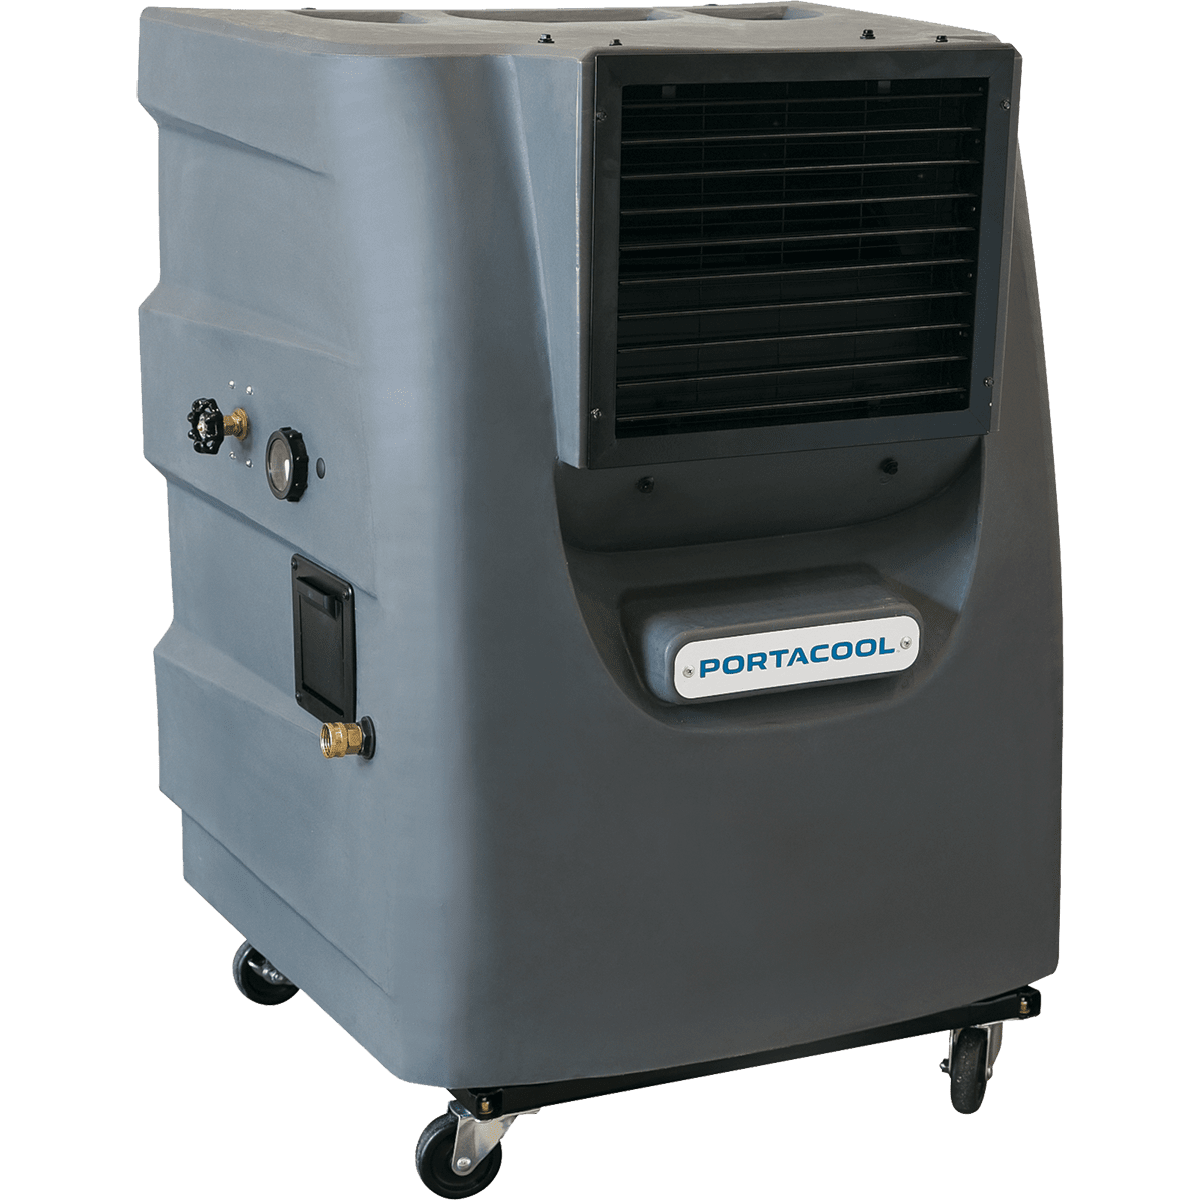 Portacool Cyclone 130 Portable Evaporative Cooler (PACCY130GA1) po6465